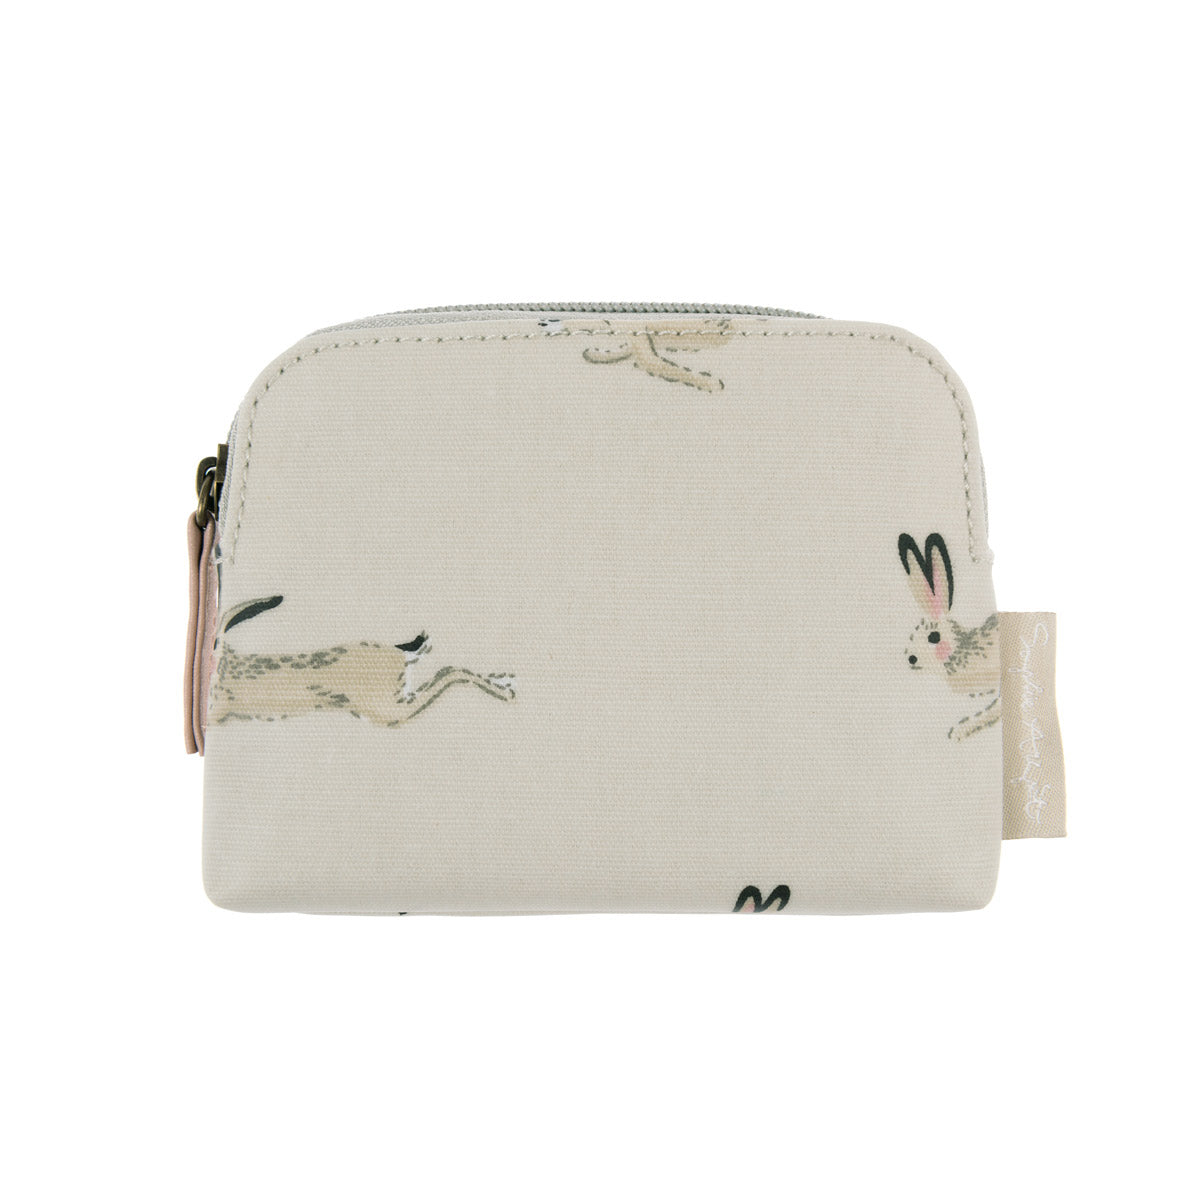 Hare Oilcloth Coin Purse